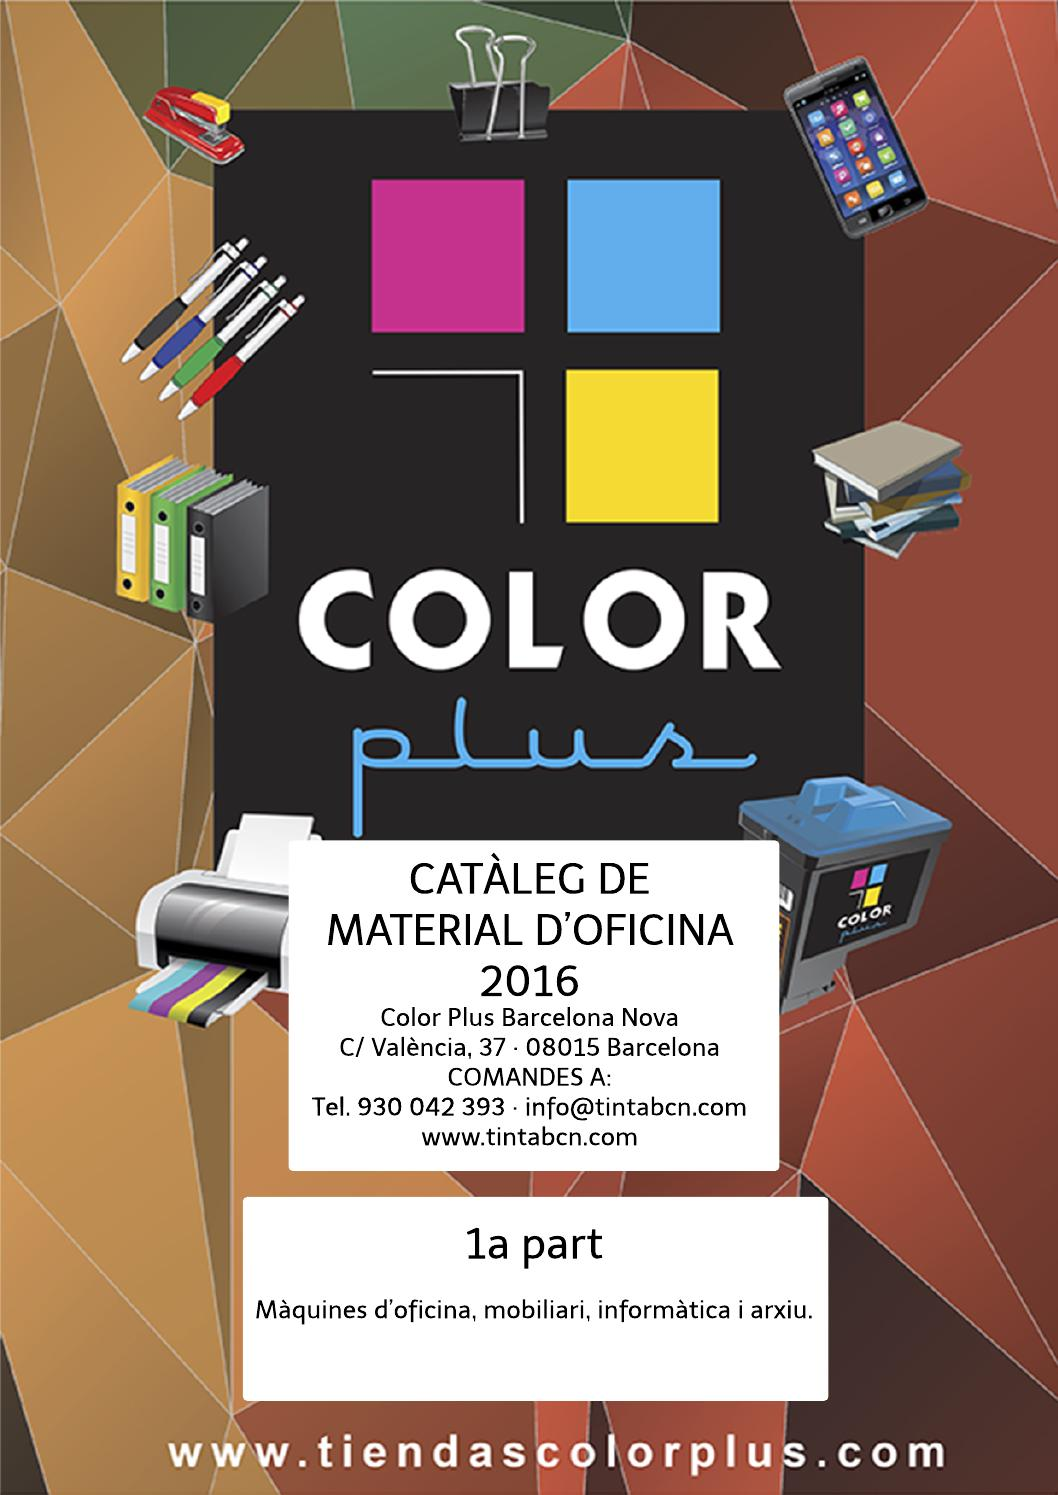 Catàleg Material Oficina 2016 Color Plus 1a Part By Color Plus Barcelona Nova Issuu